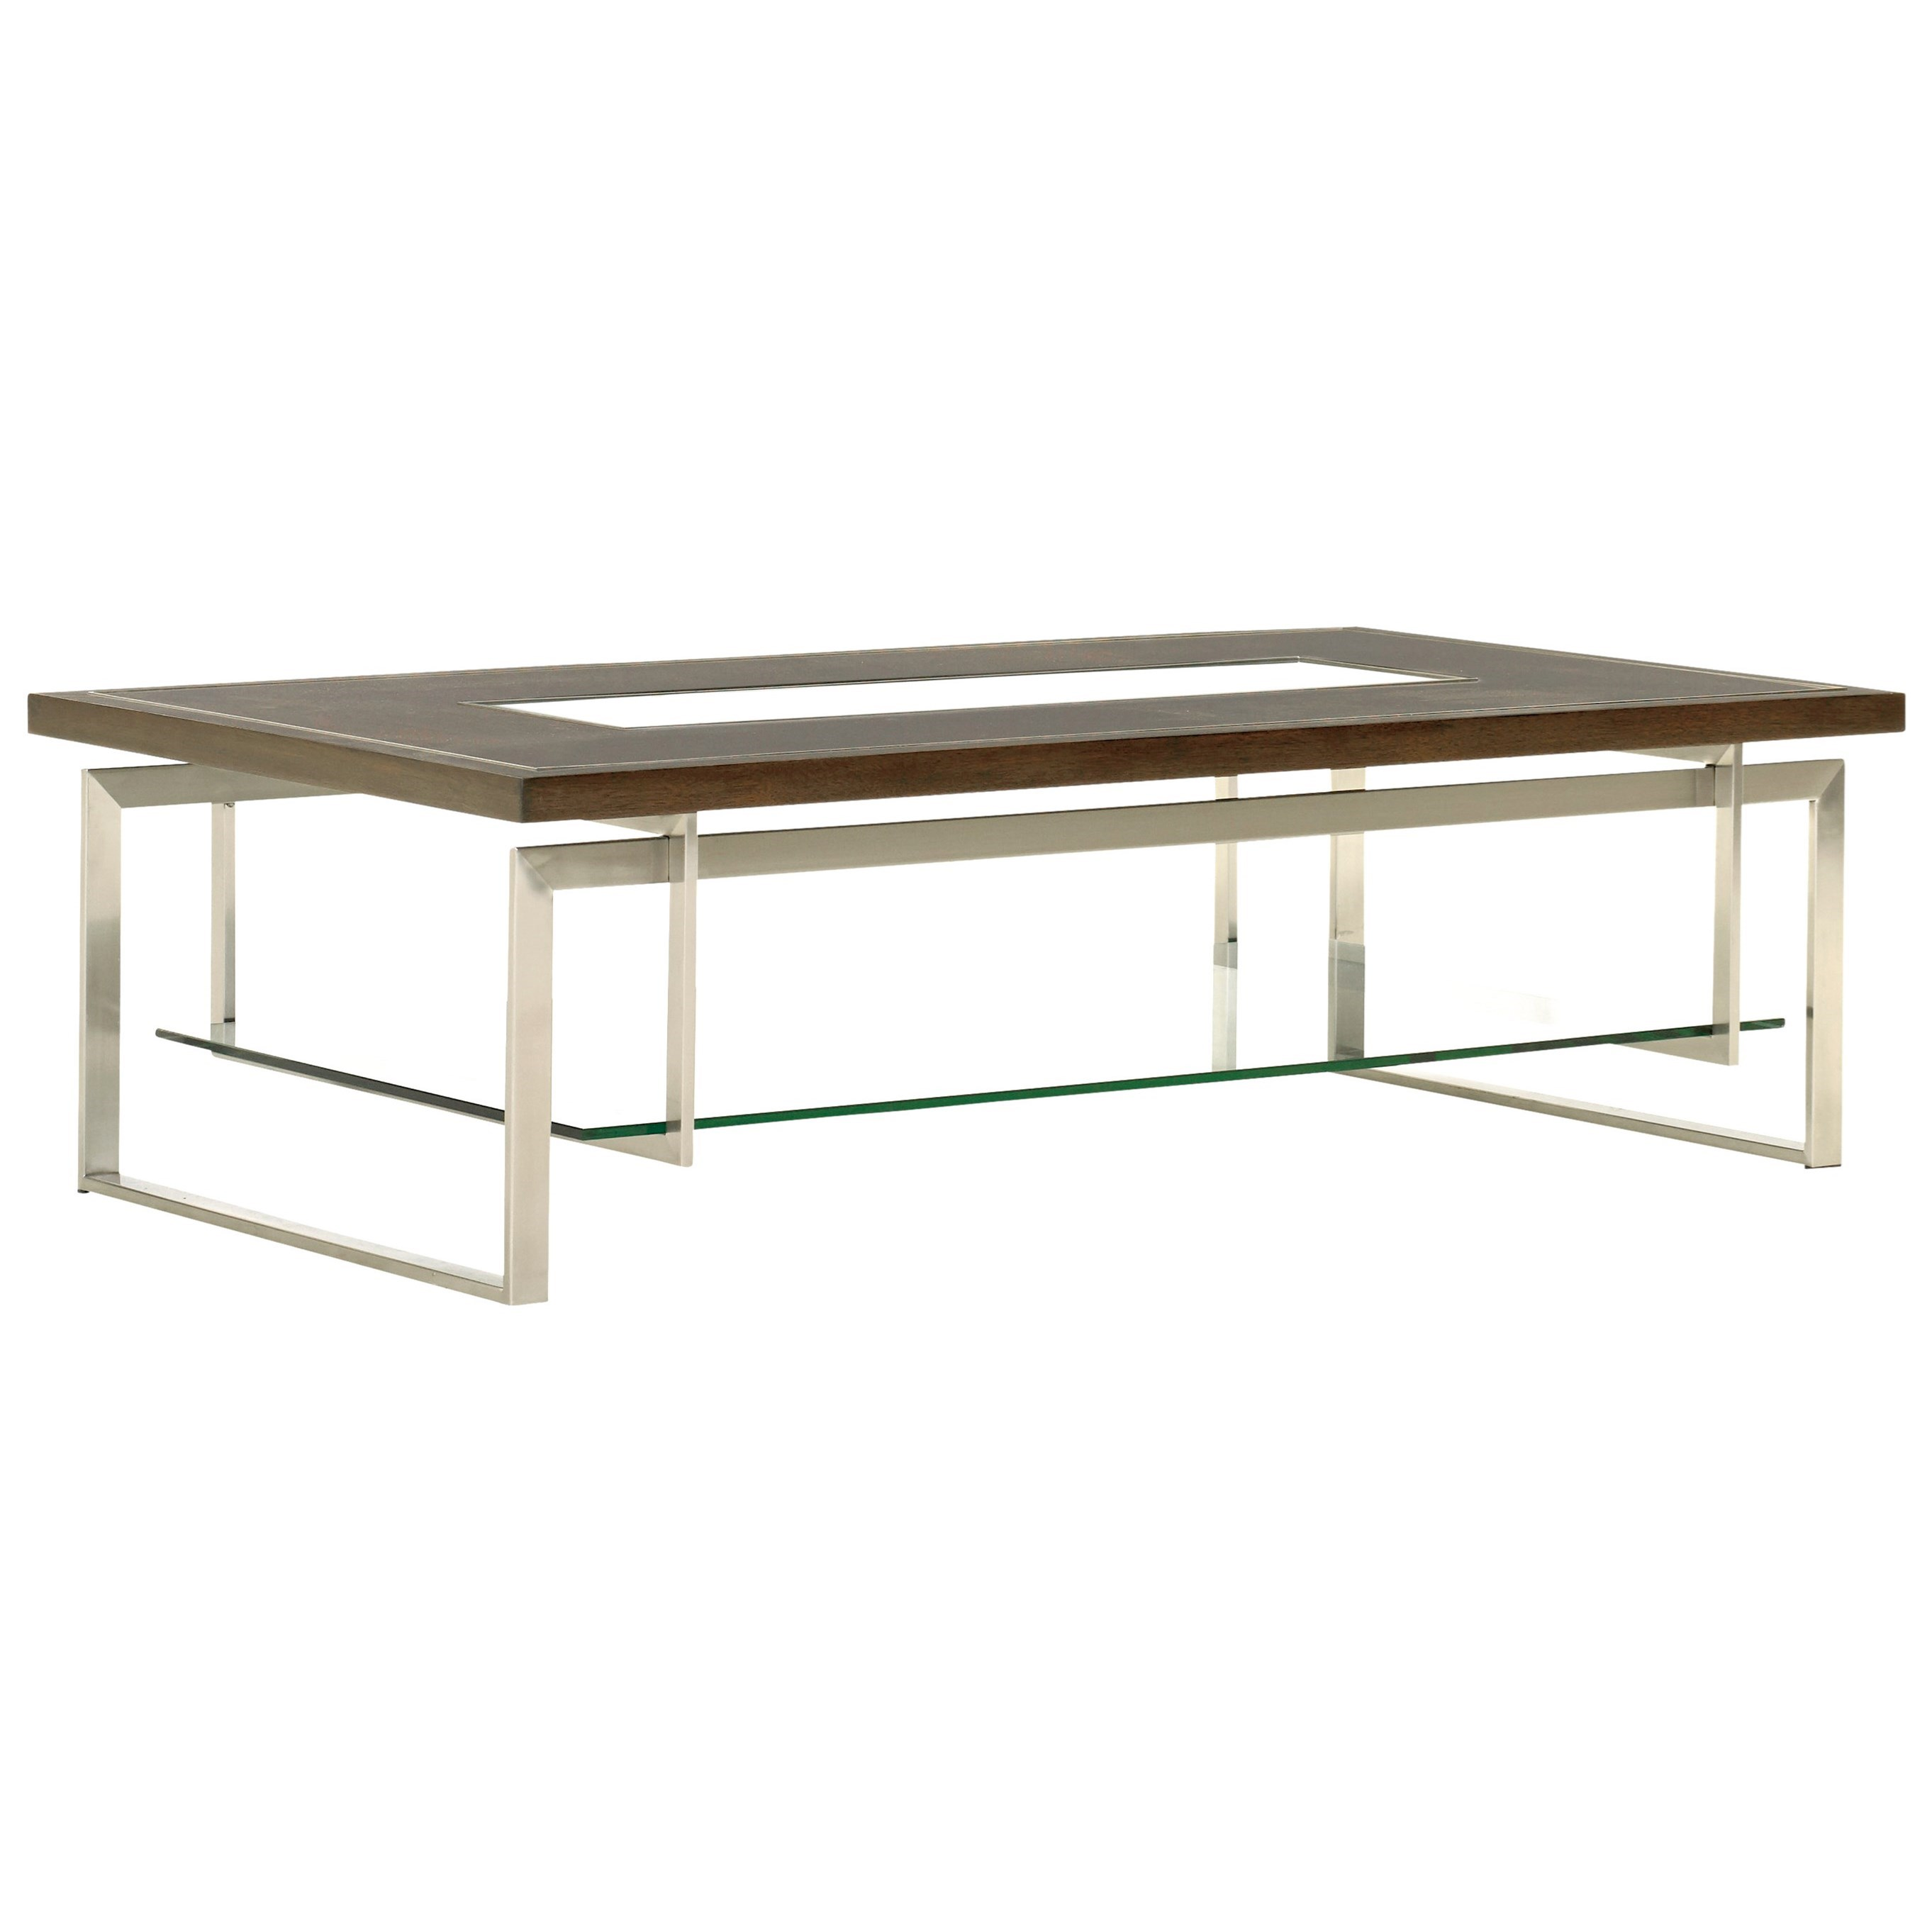 MacArthur Park Granville Cocktail Table by Lexington at Jacksonville Furniture Mart